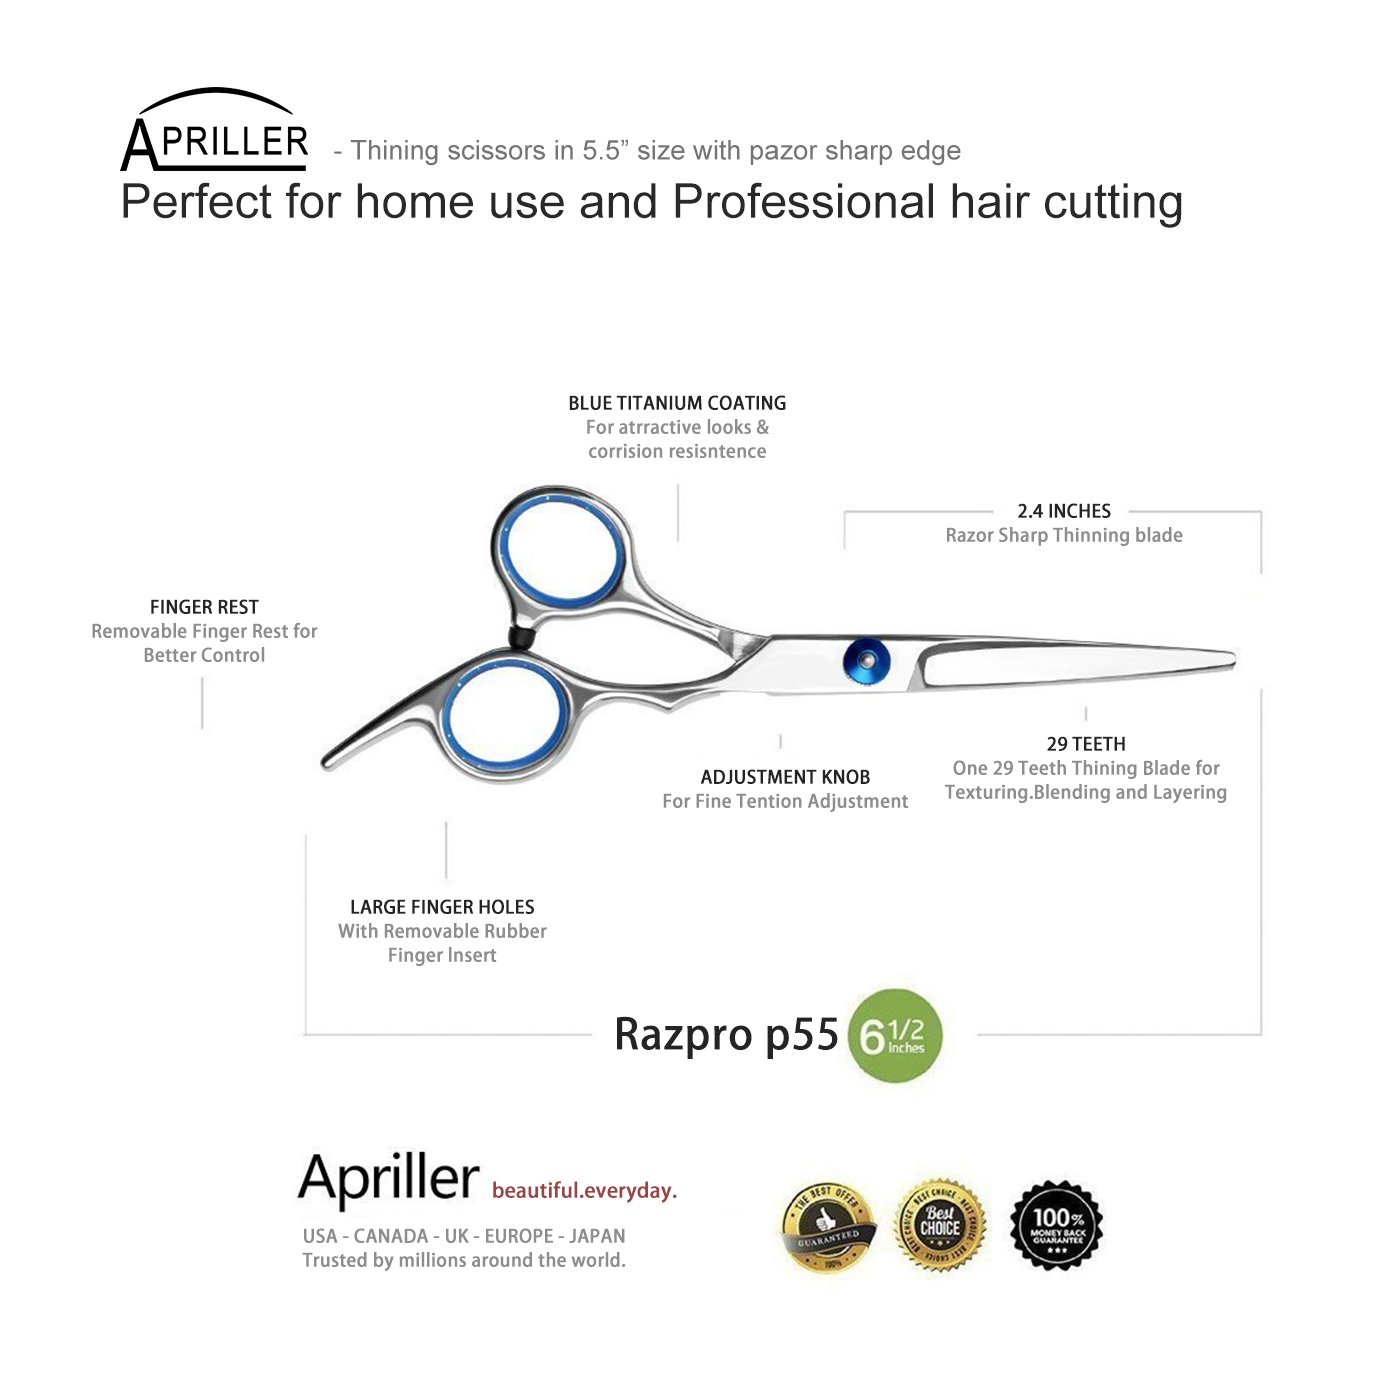 Hair Cutting Scissors/Thinning Shears/Professional Barber/Salon Razor Edge Tools set/Mustache Scissors and Barber Scissors with Fine Adjustment Screw-High Quality Japanese Stainless Steel kit-Apriller by Apriller (Image #2)